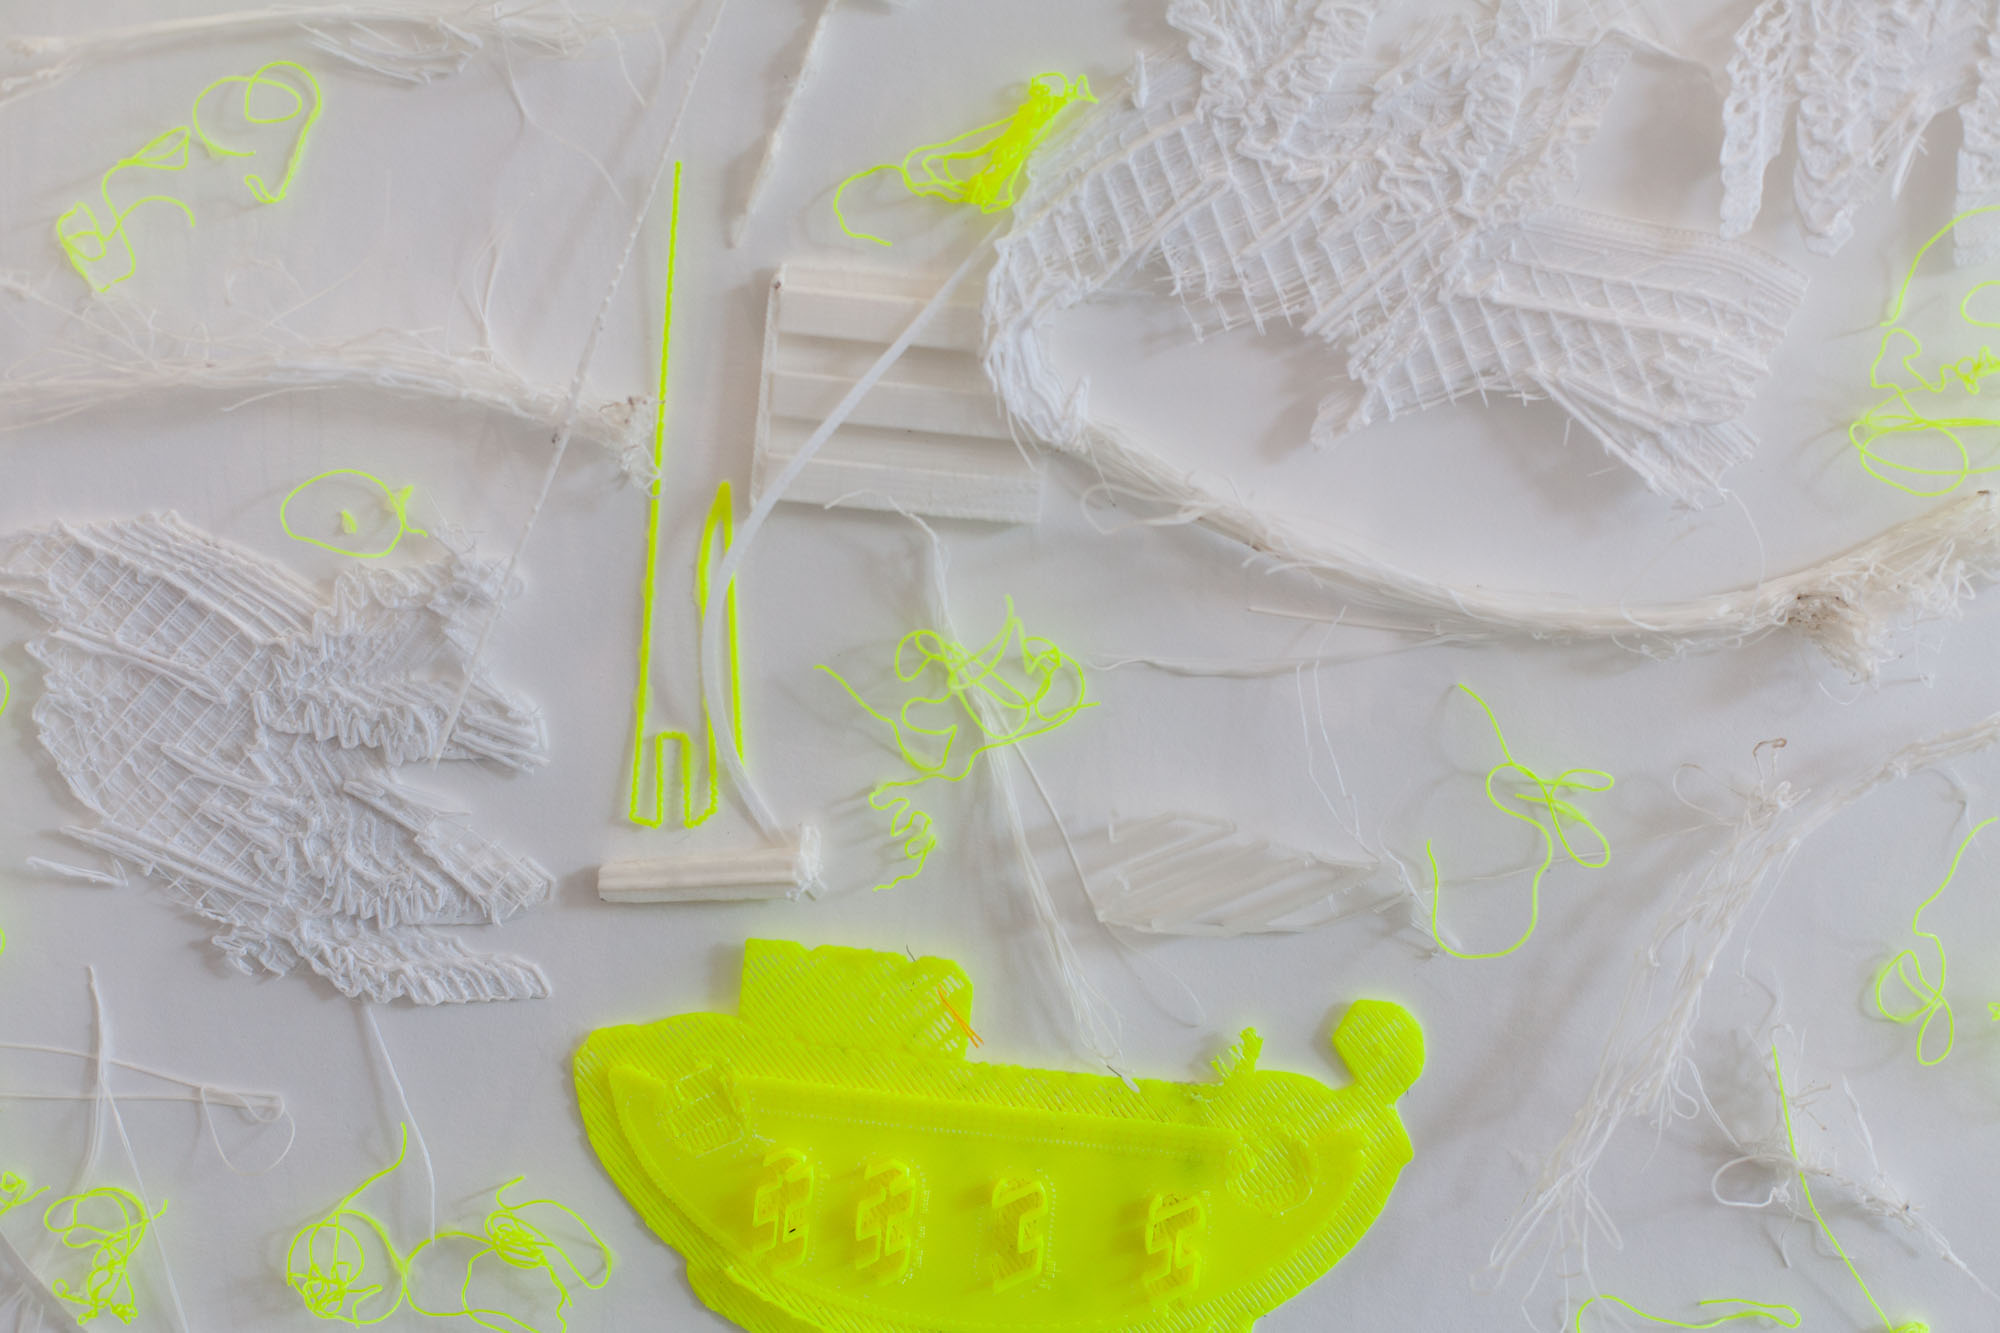 Tina Douglas, prickly 2019, 3D printed plastic errors on ragboard, 60 x 55 x 6 cm with acrylic box (detail)